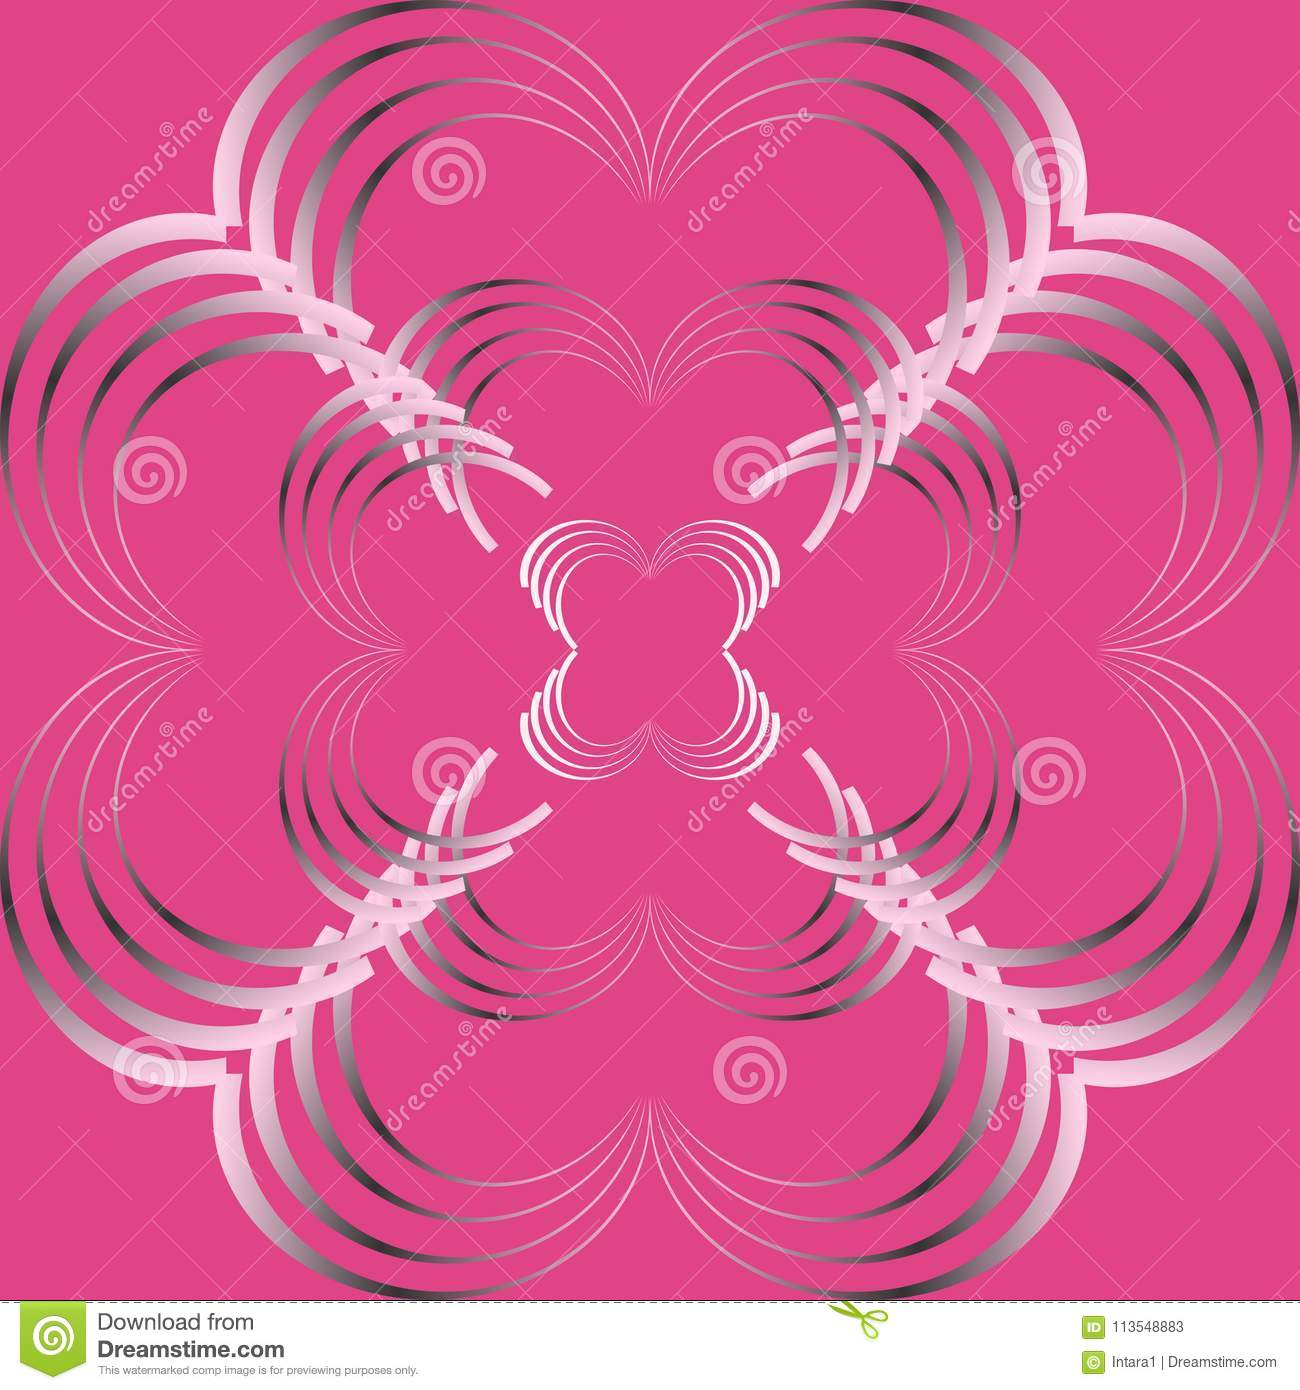 Abstract Curve Pattern In Gradient Pink And Black Colored On Dark